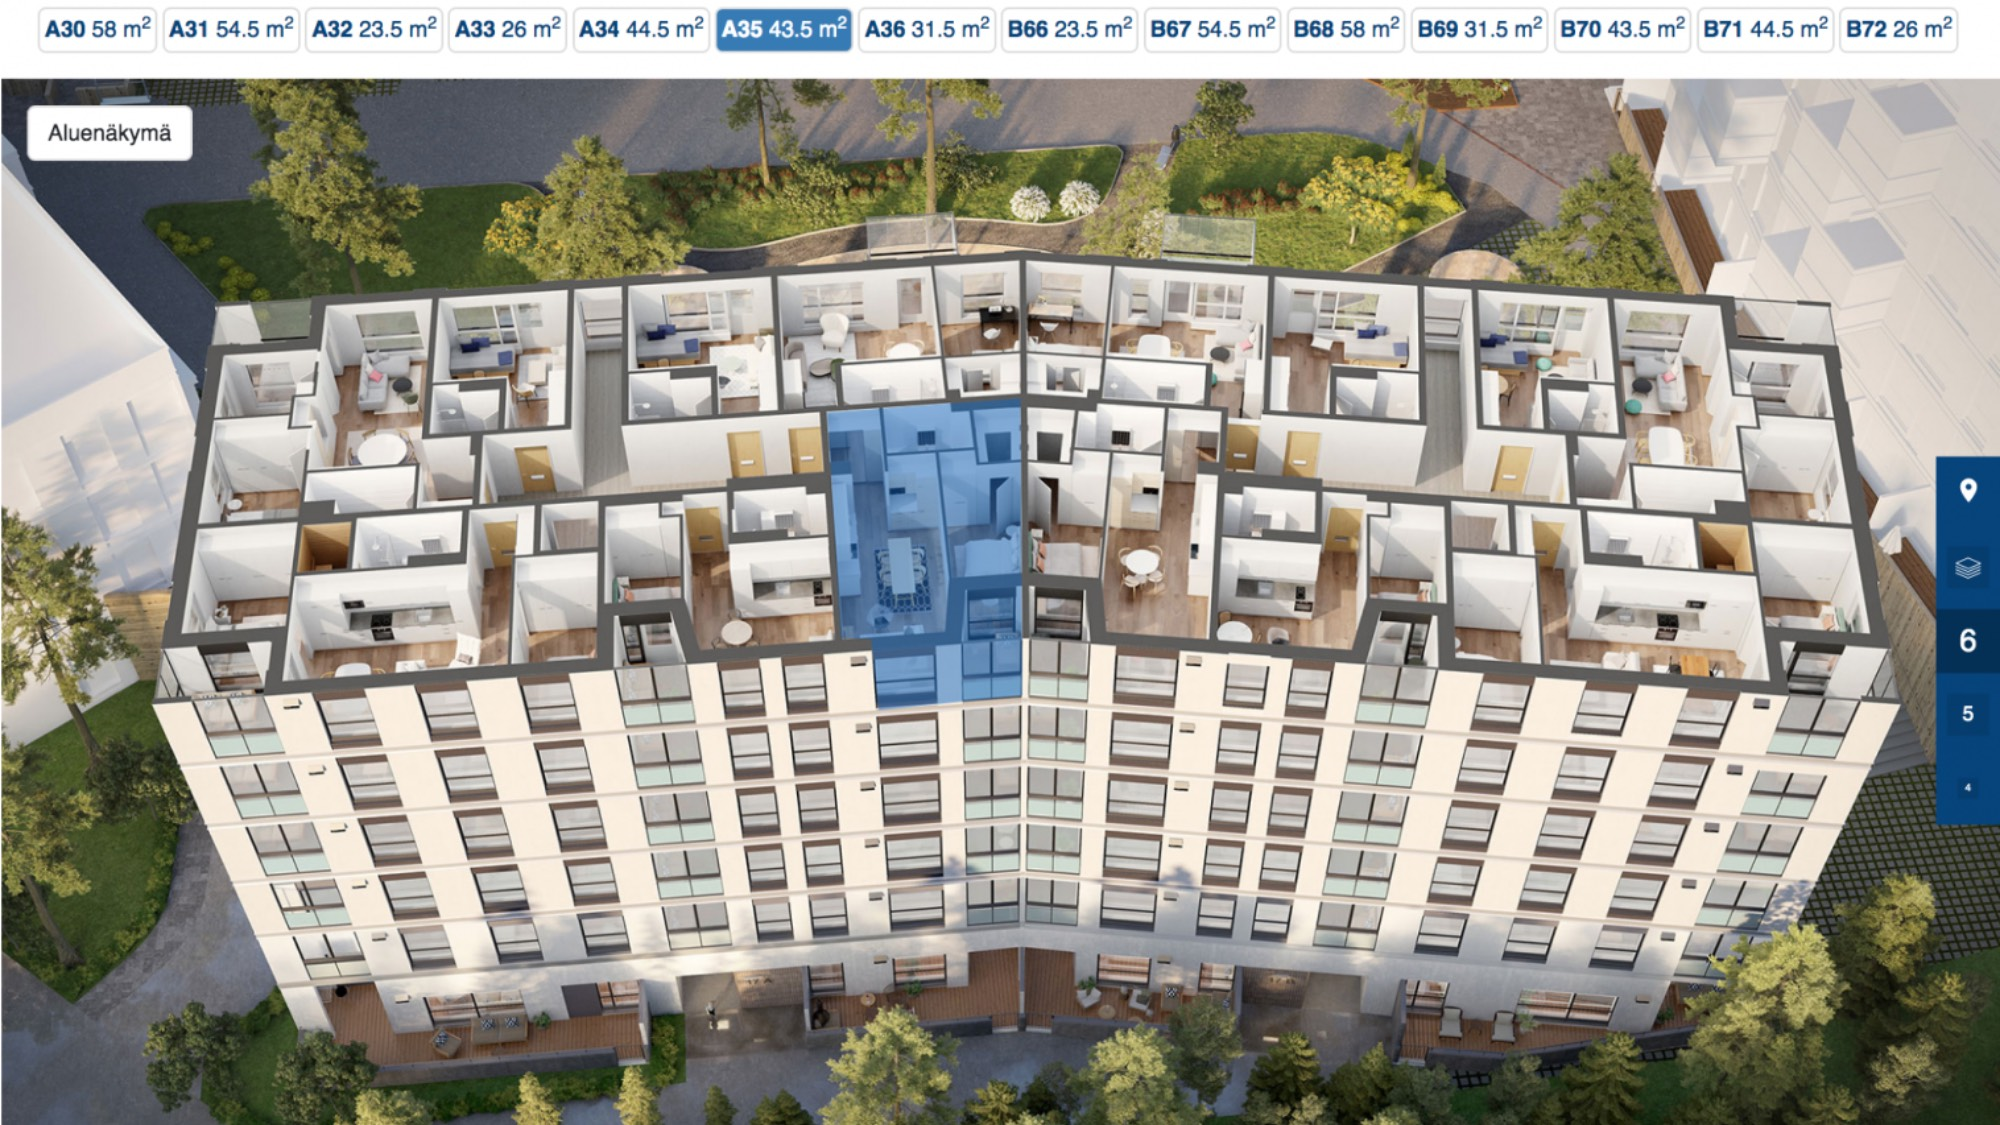 An interactive 3D model of a large housing building seen from above with the different sized apartments in full view